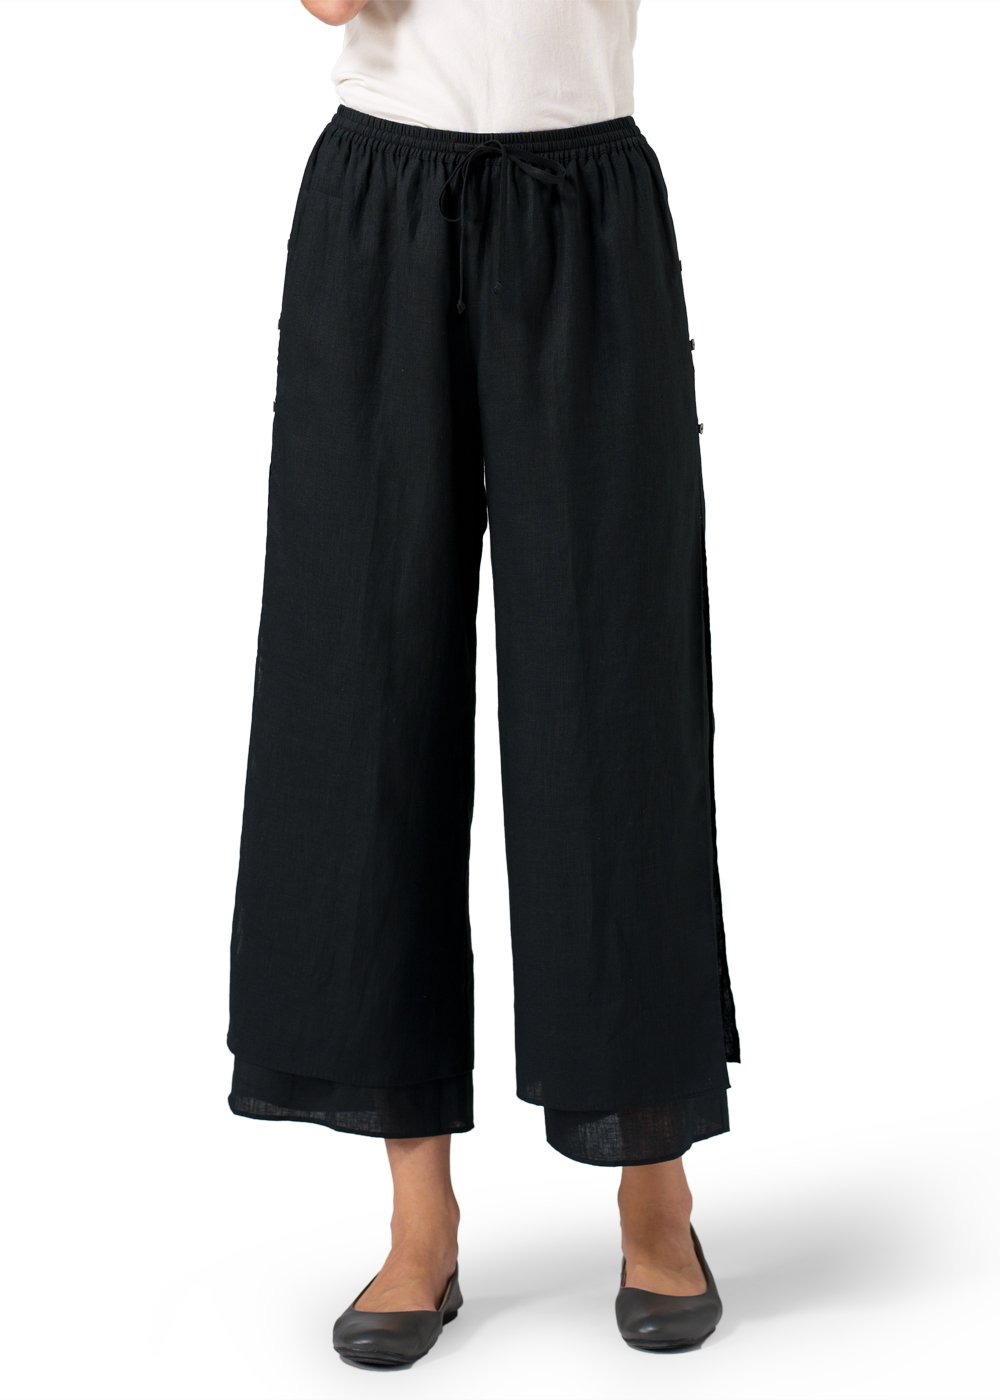 Linen Double-Layer Cropped Pants With Sea Shell Button-L-Black/Black